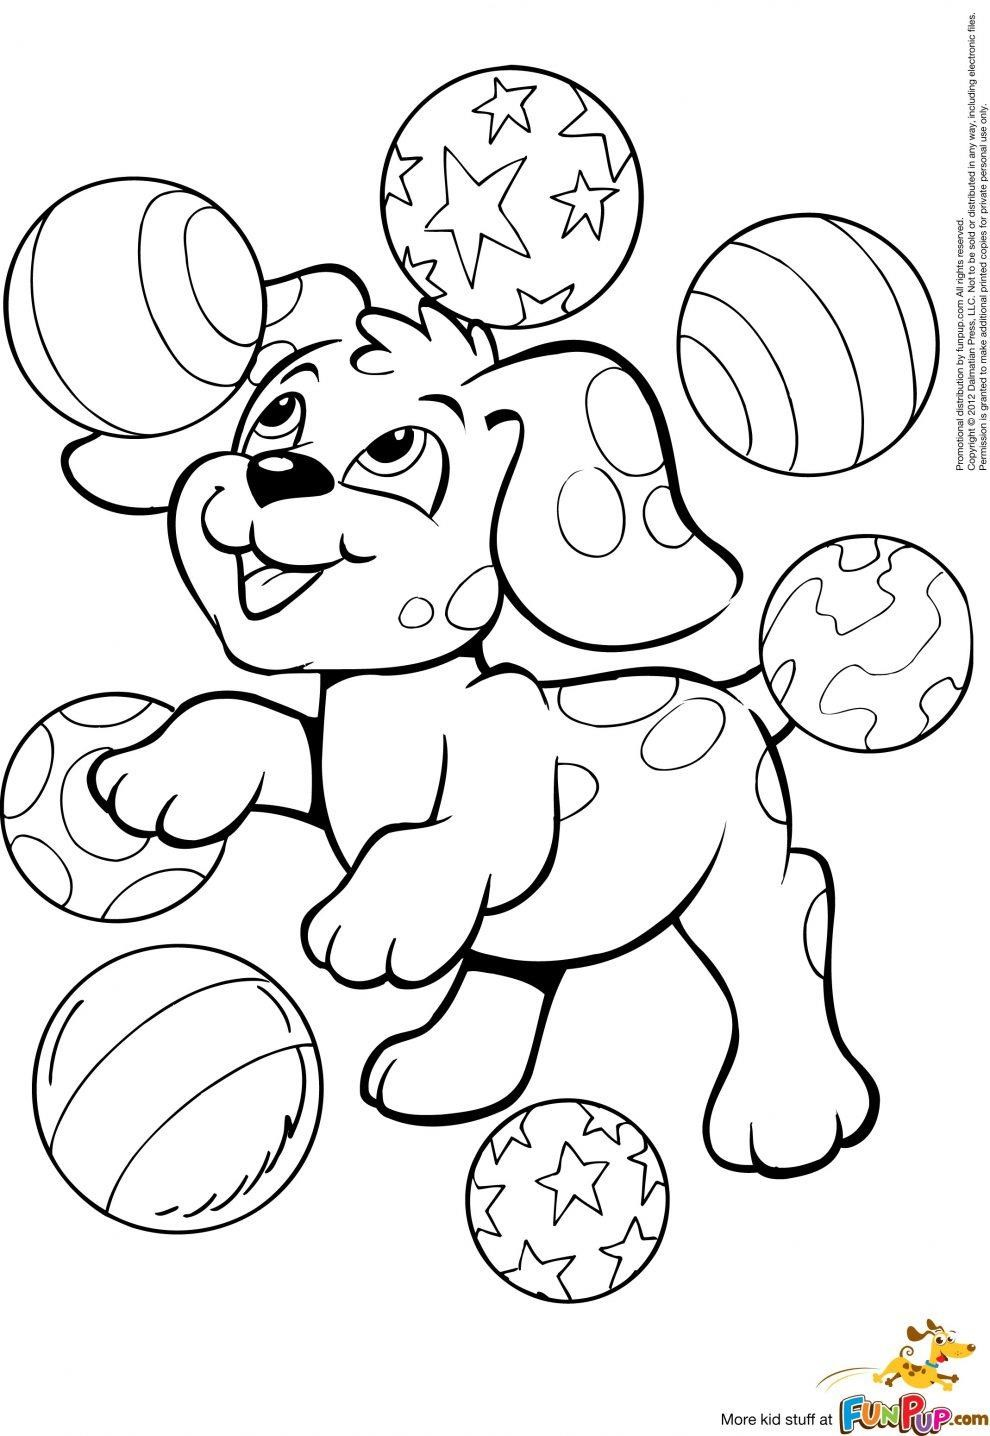 Free-Printable-Puppy-Picture-To-Color-Dog-Coloring